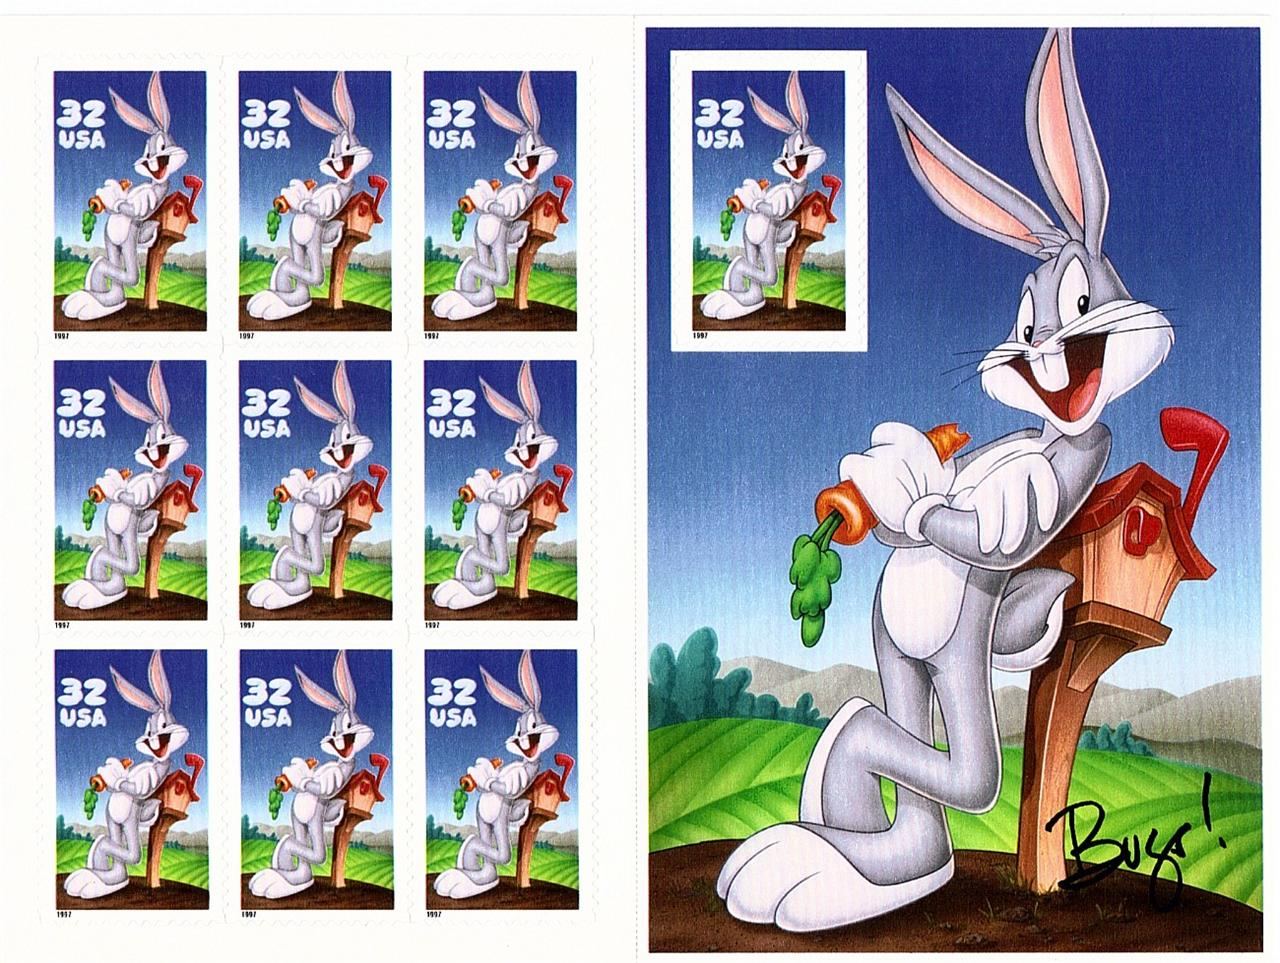 1997 US - Sc3137 32¢ Bugs Bunny Pane - Normal (10) MNH